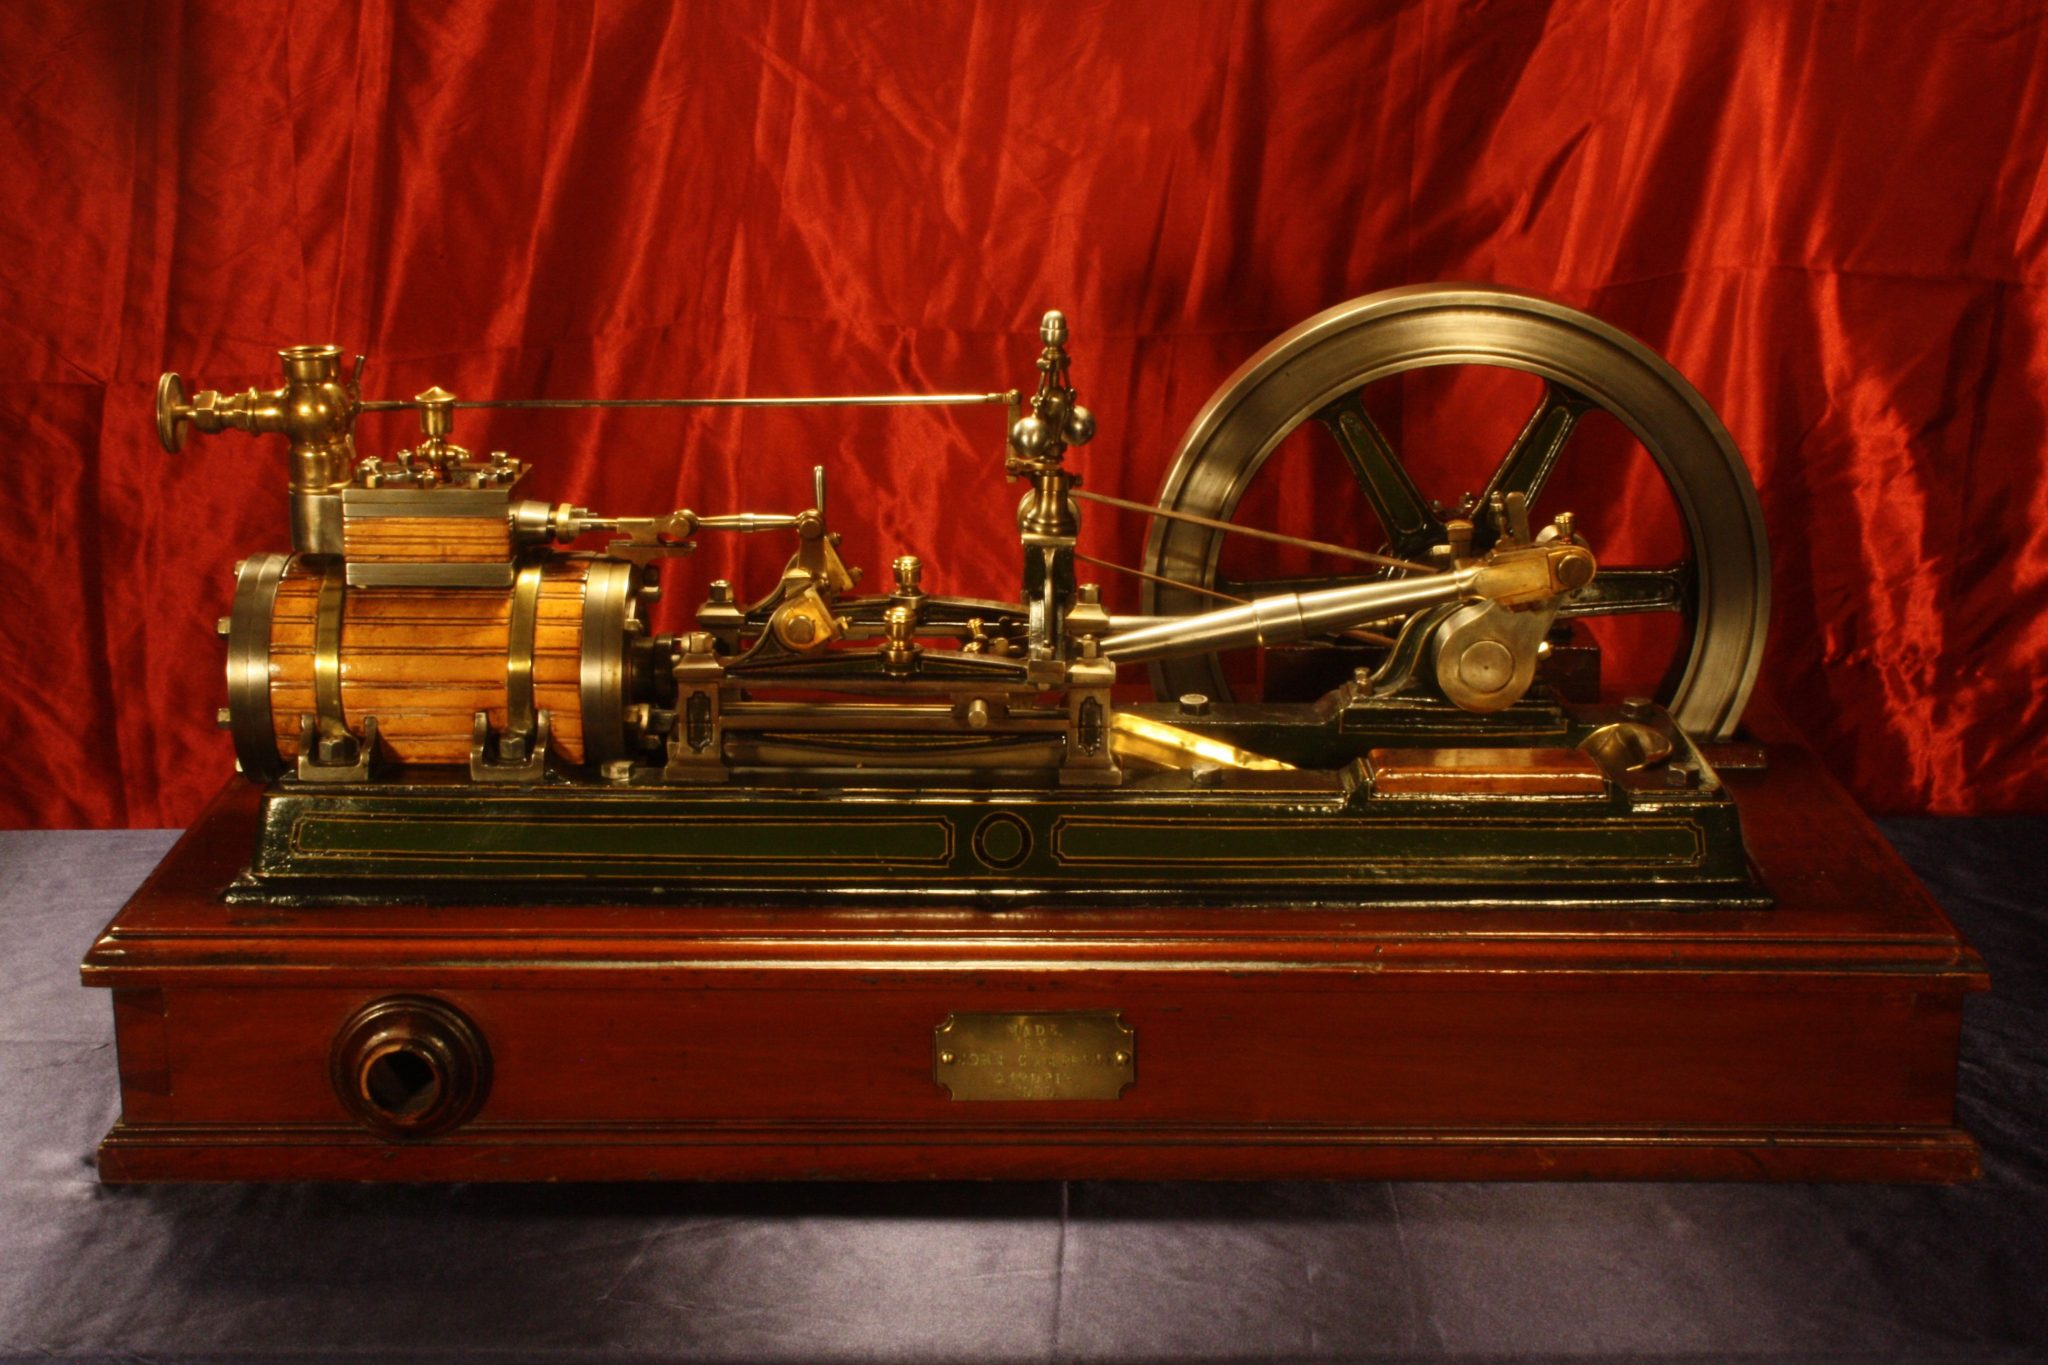 Image of Victorian Model Steam Engine